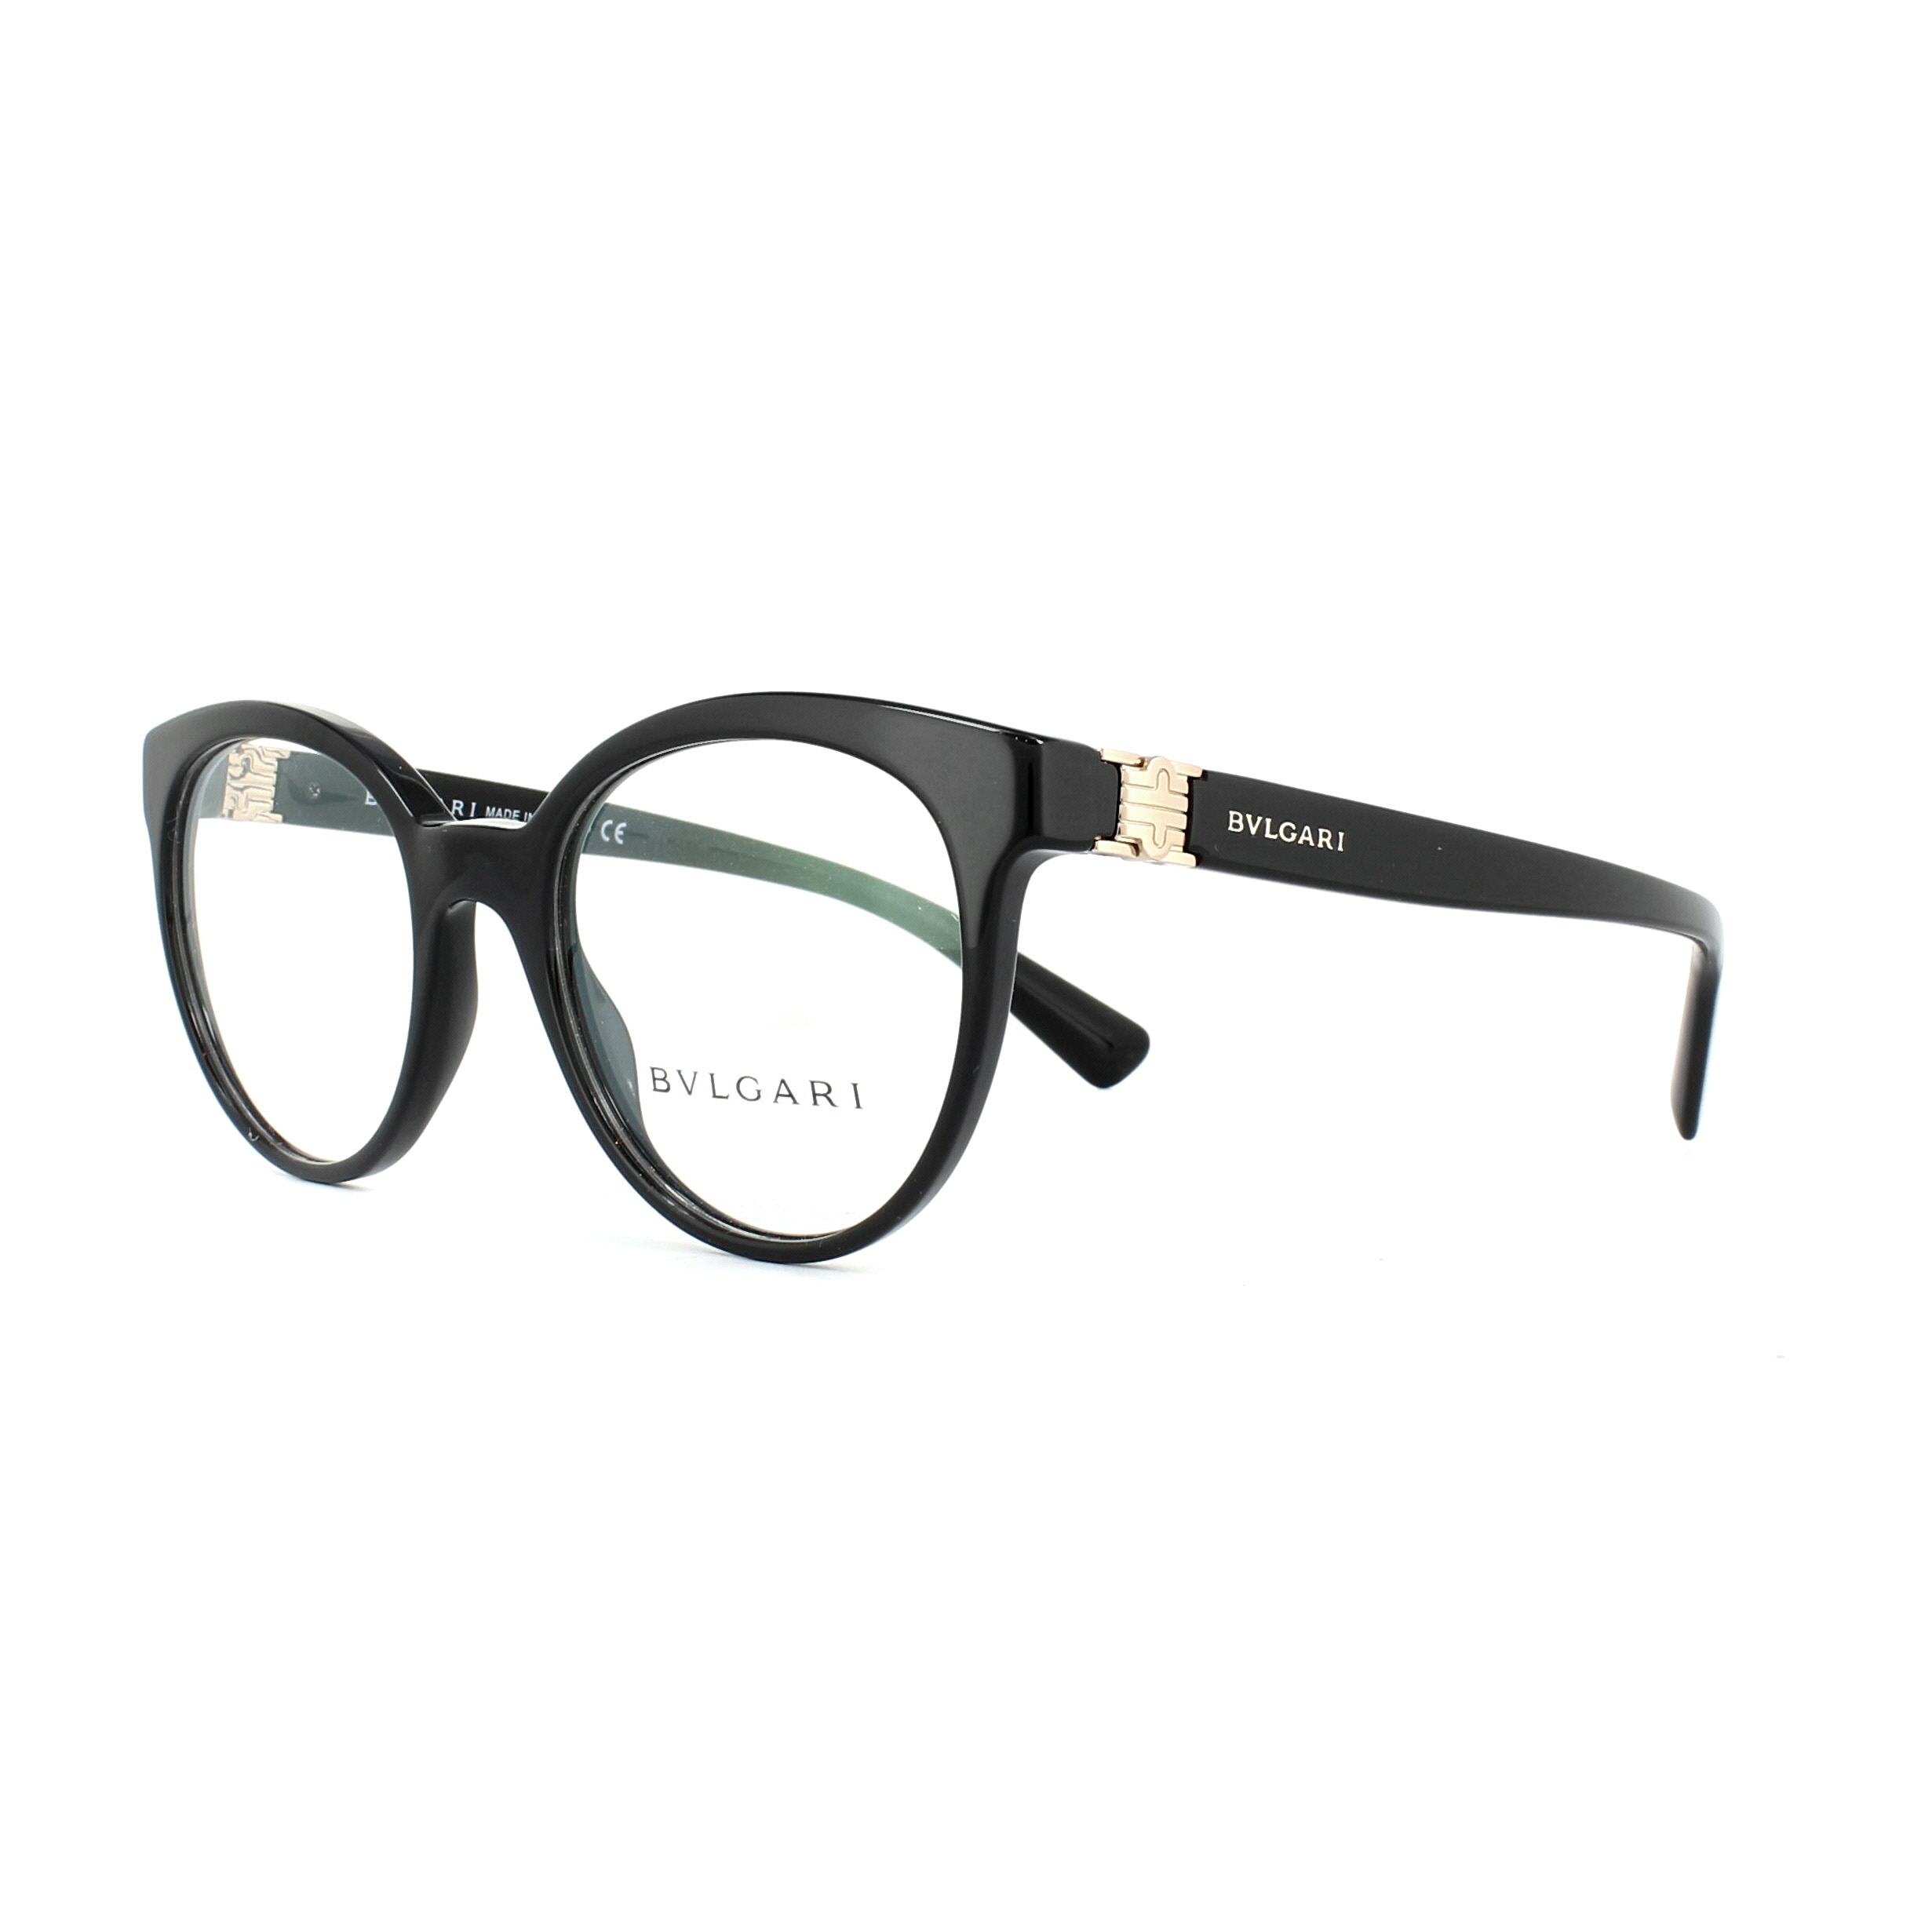 5c60cb94ea645 Bvlgari Glasses Frames 4152 501 Black 49mm Womens 8053672811810